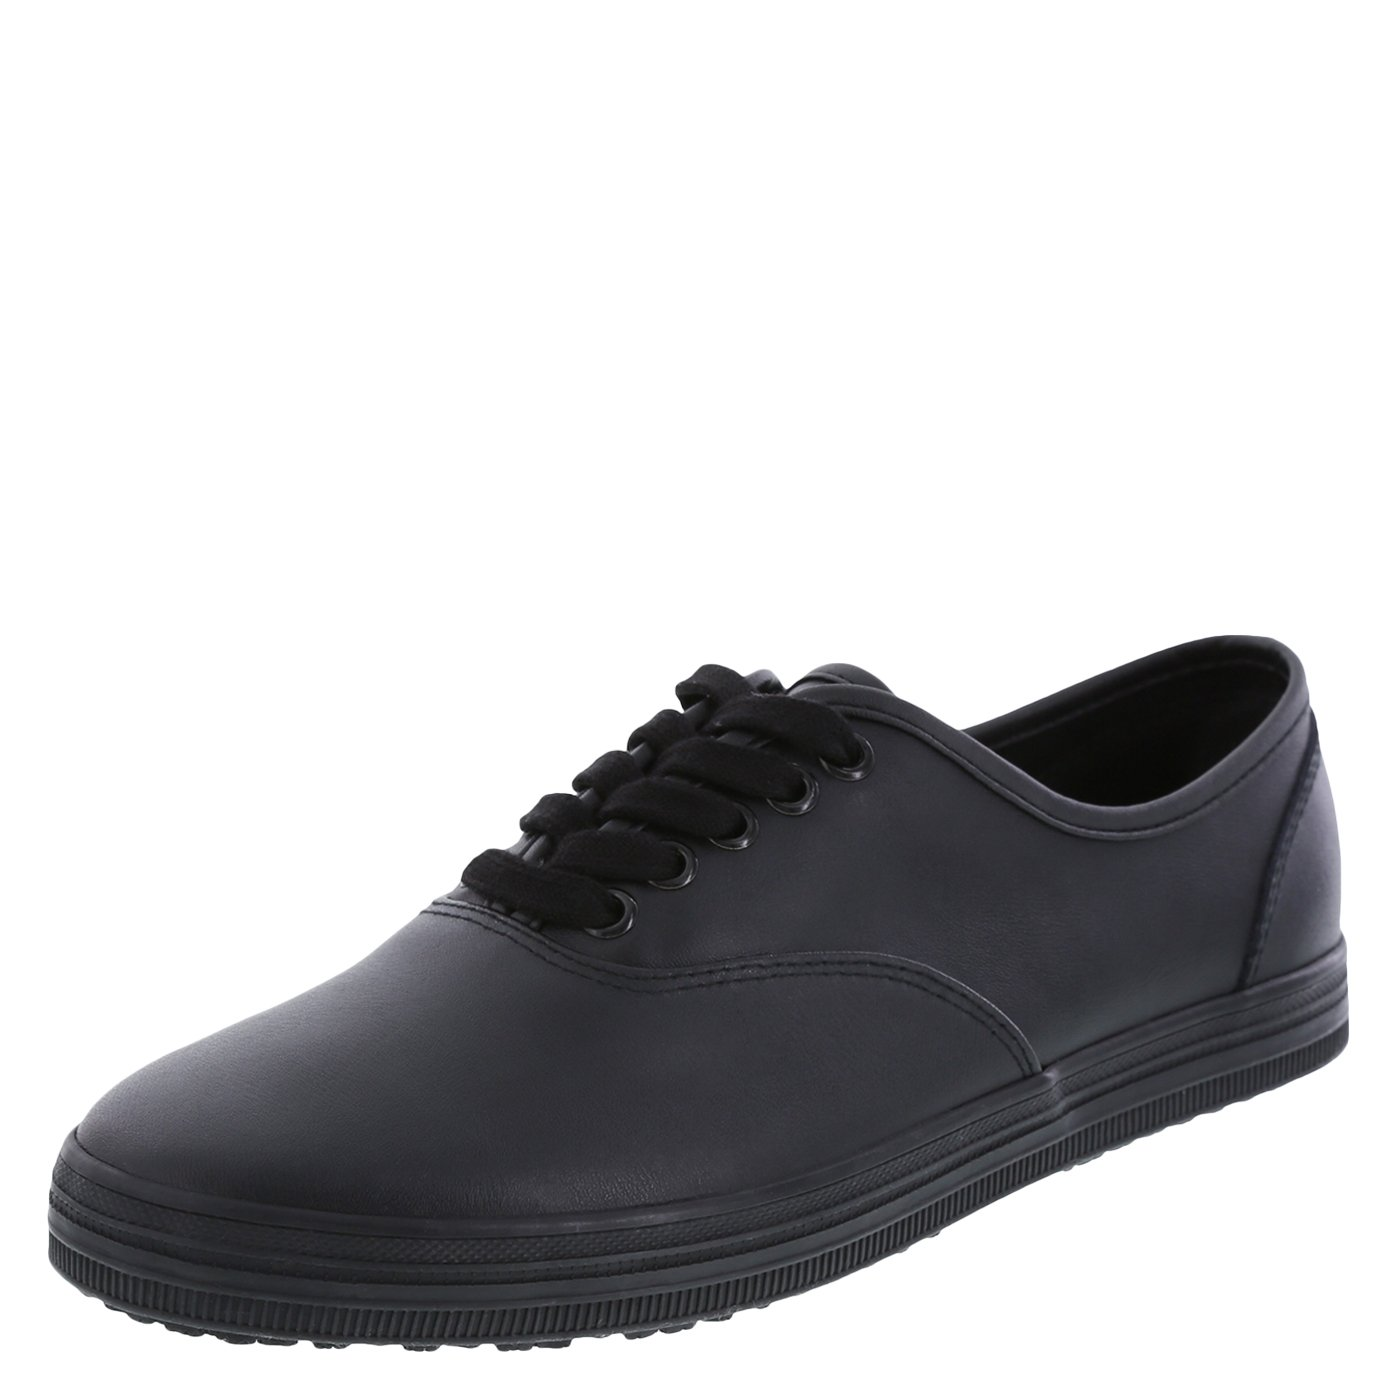 safeTstep Slip Resistant Women's Black Leather Women's Kandice Leather Oxford 7.5 Wide